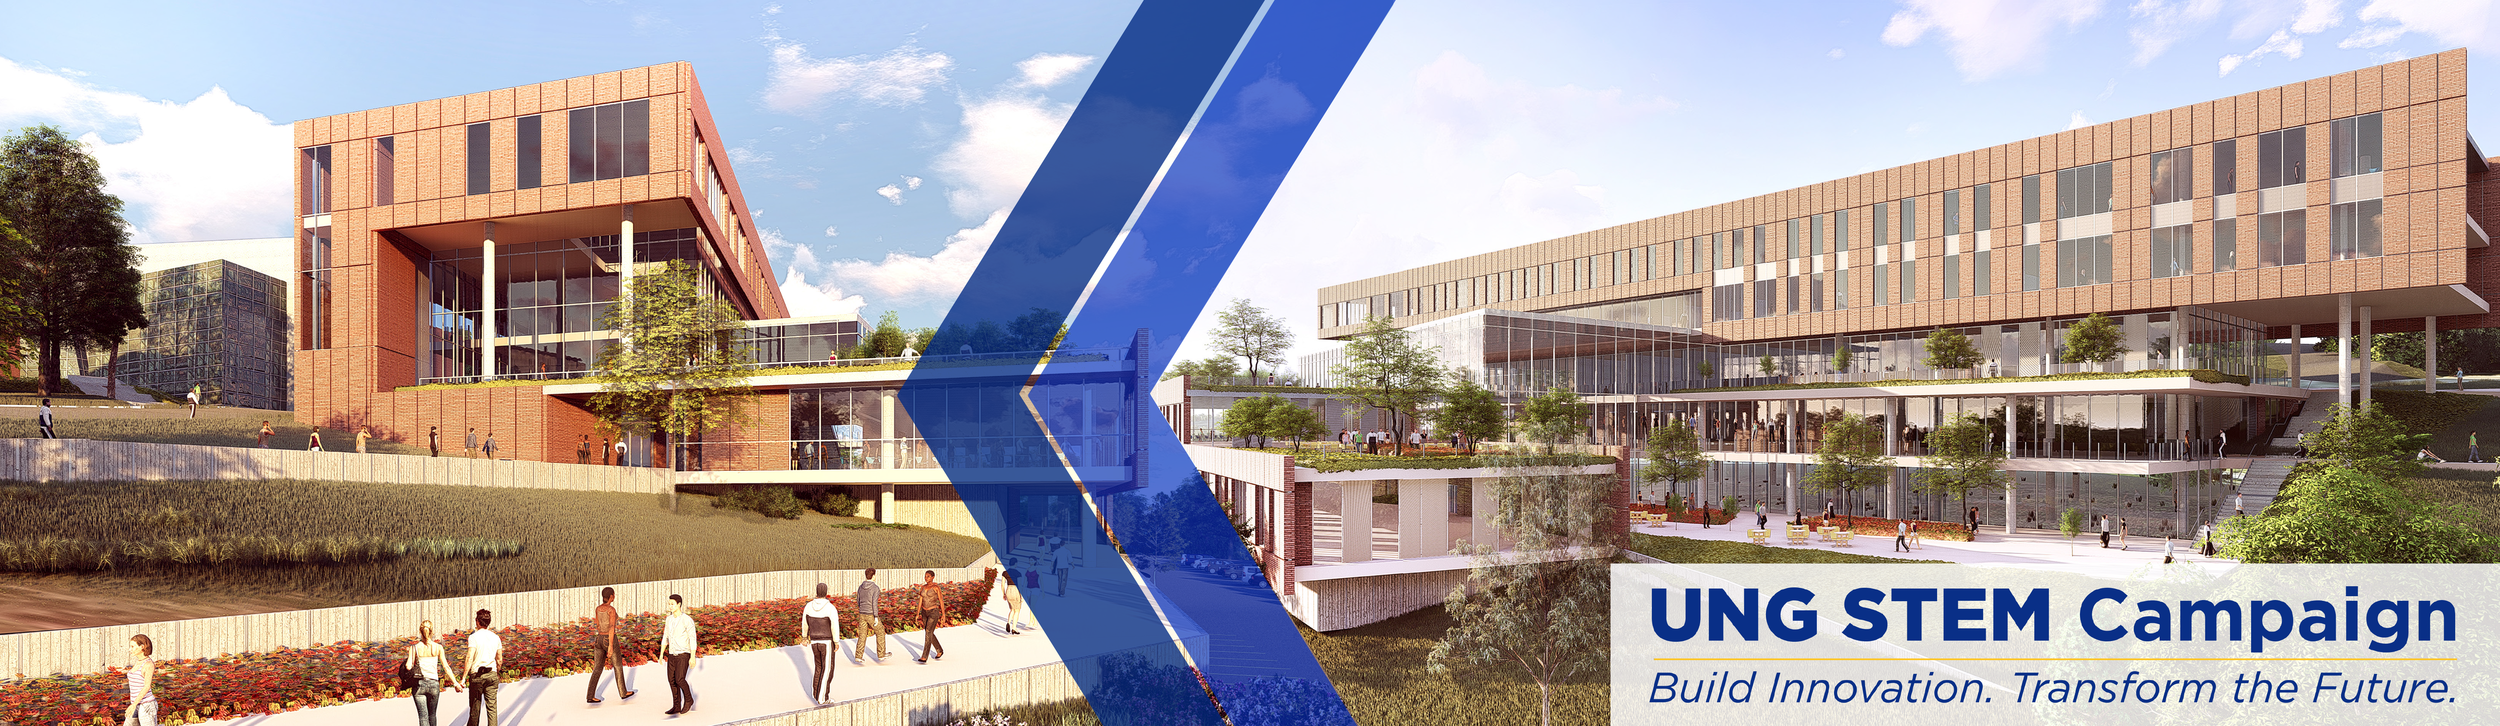 STEM Building page banner: Images show a different sketches of what the STEM building will look like when it's built.